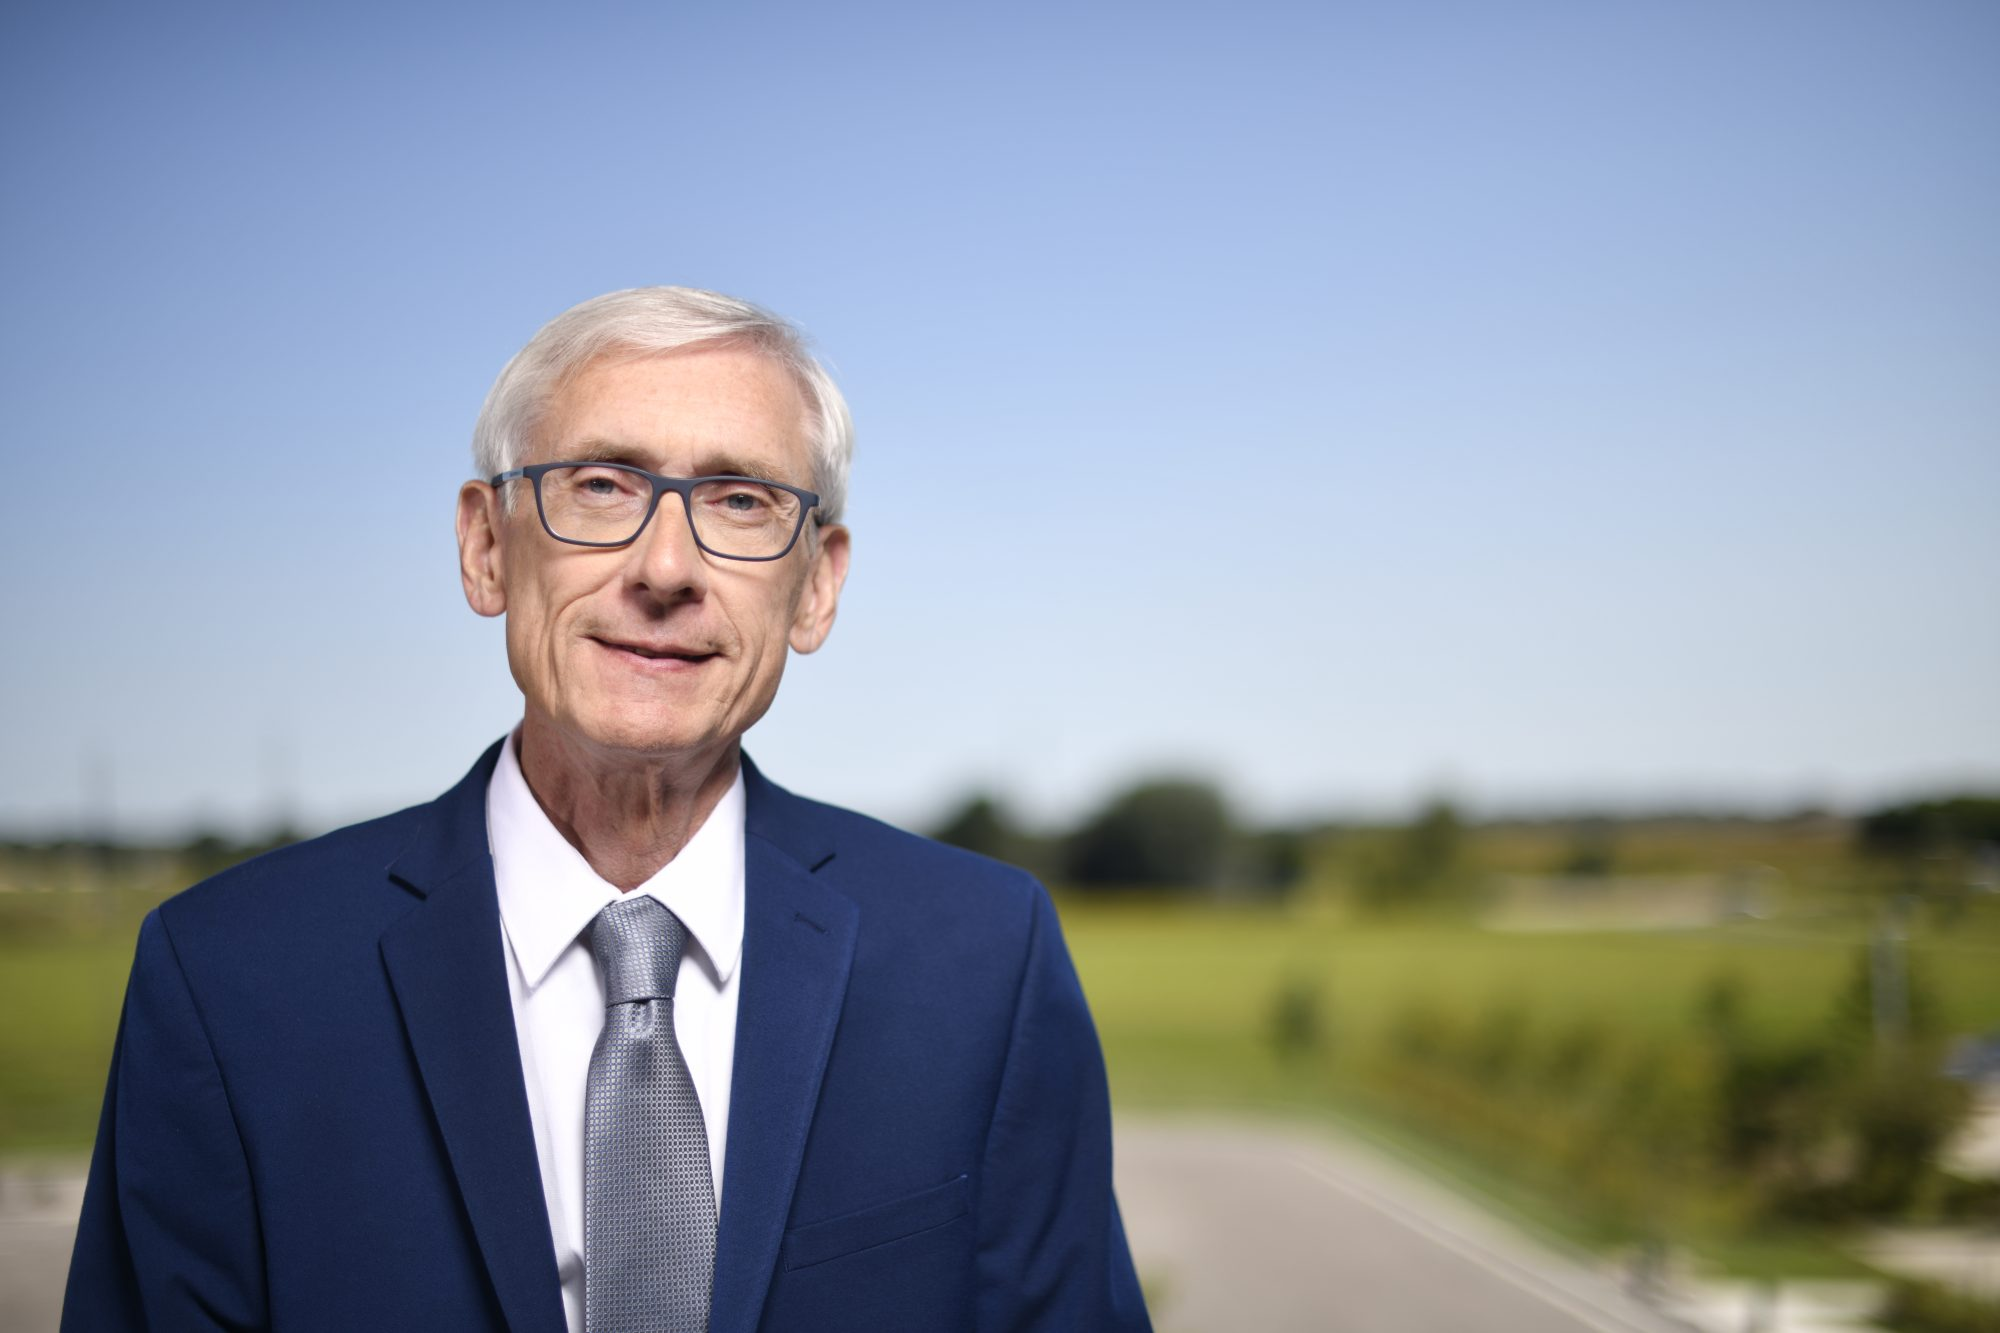 Gov. Evers Delivers Radio Address Encouraging Wisconsinites to Take Care of their Mental Health this Holiday Season